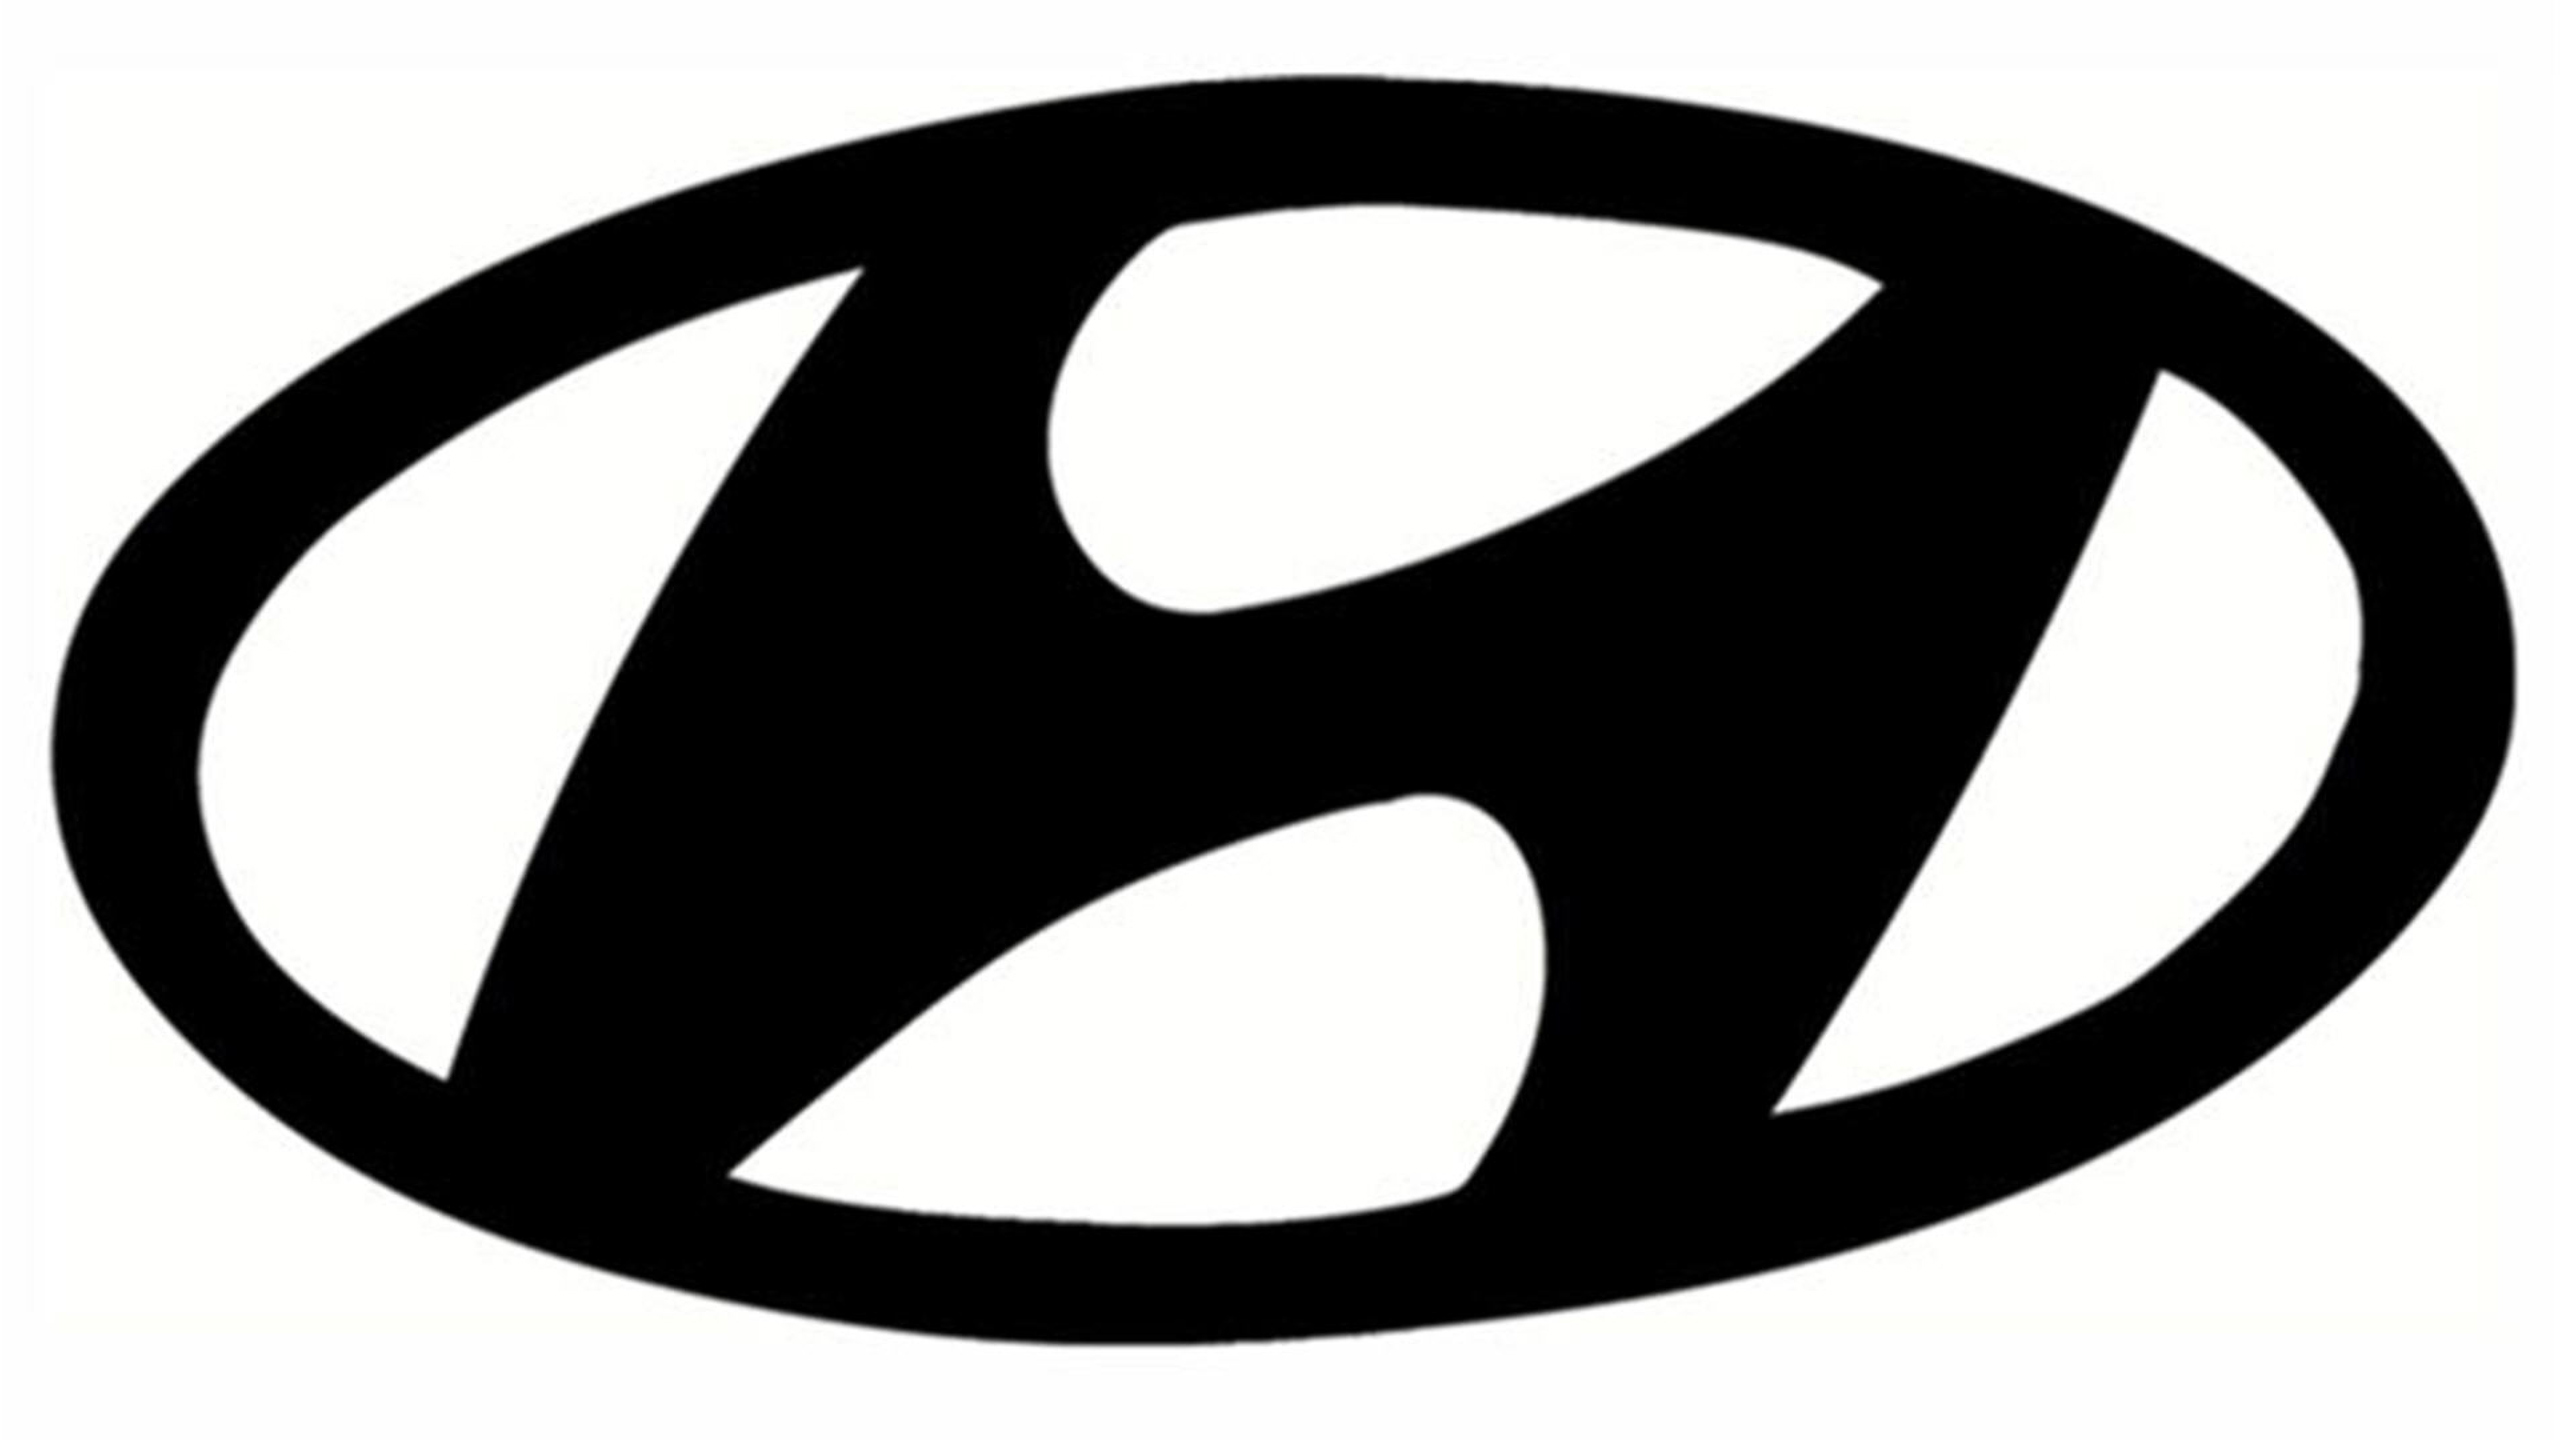 hyundai motor company Hyundai motor company was founded in 1967 along with its 328% owned  subsidiary, kia motors together, they make up the hyundai motor.